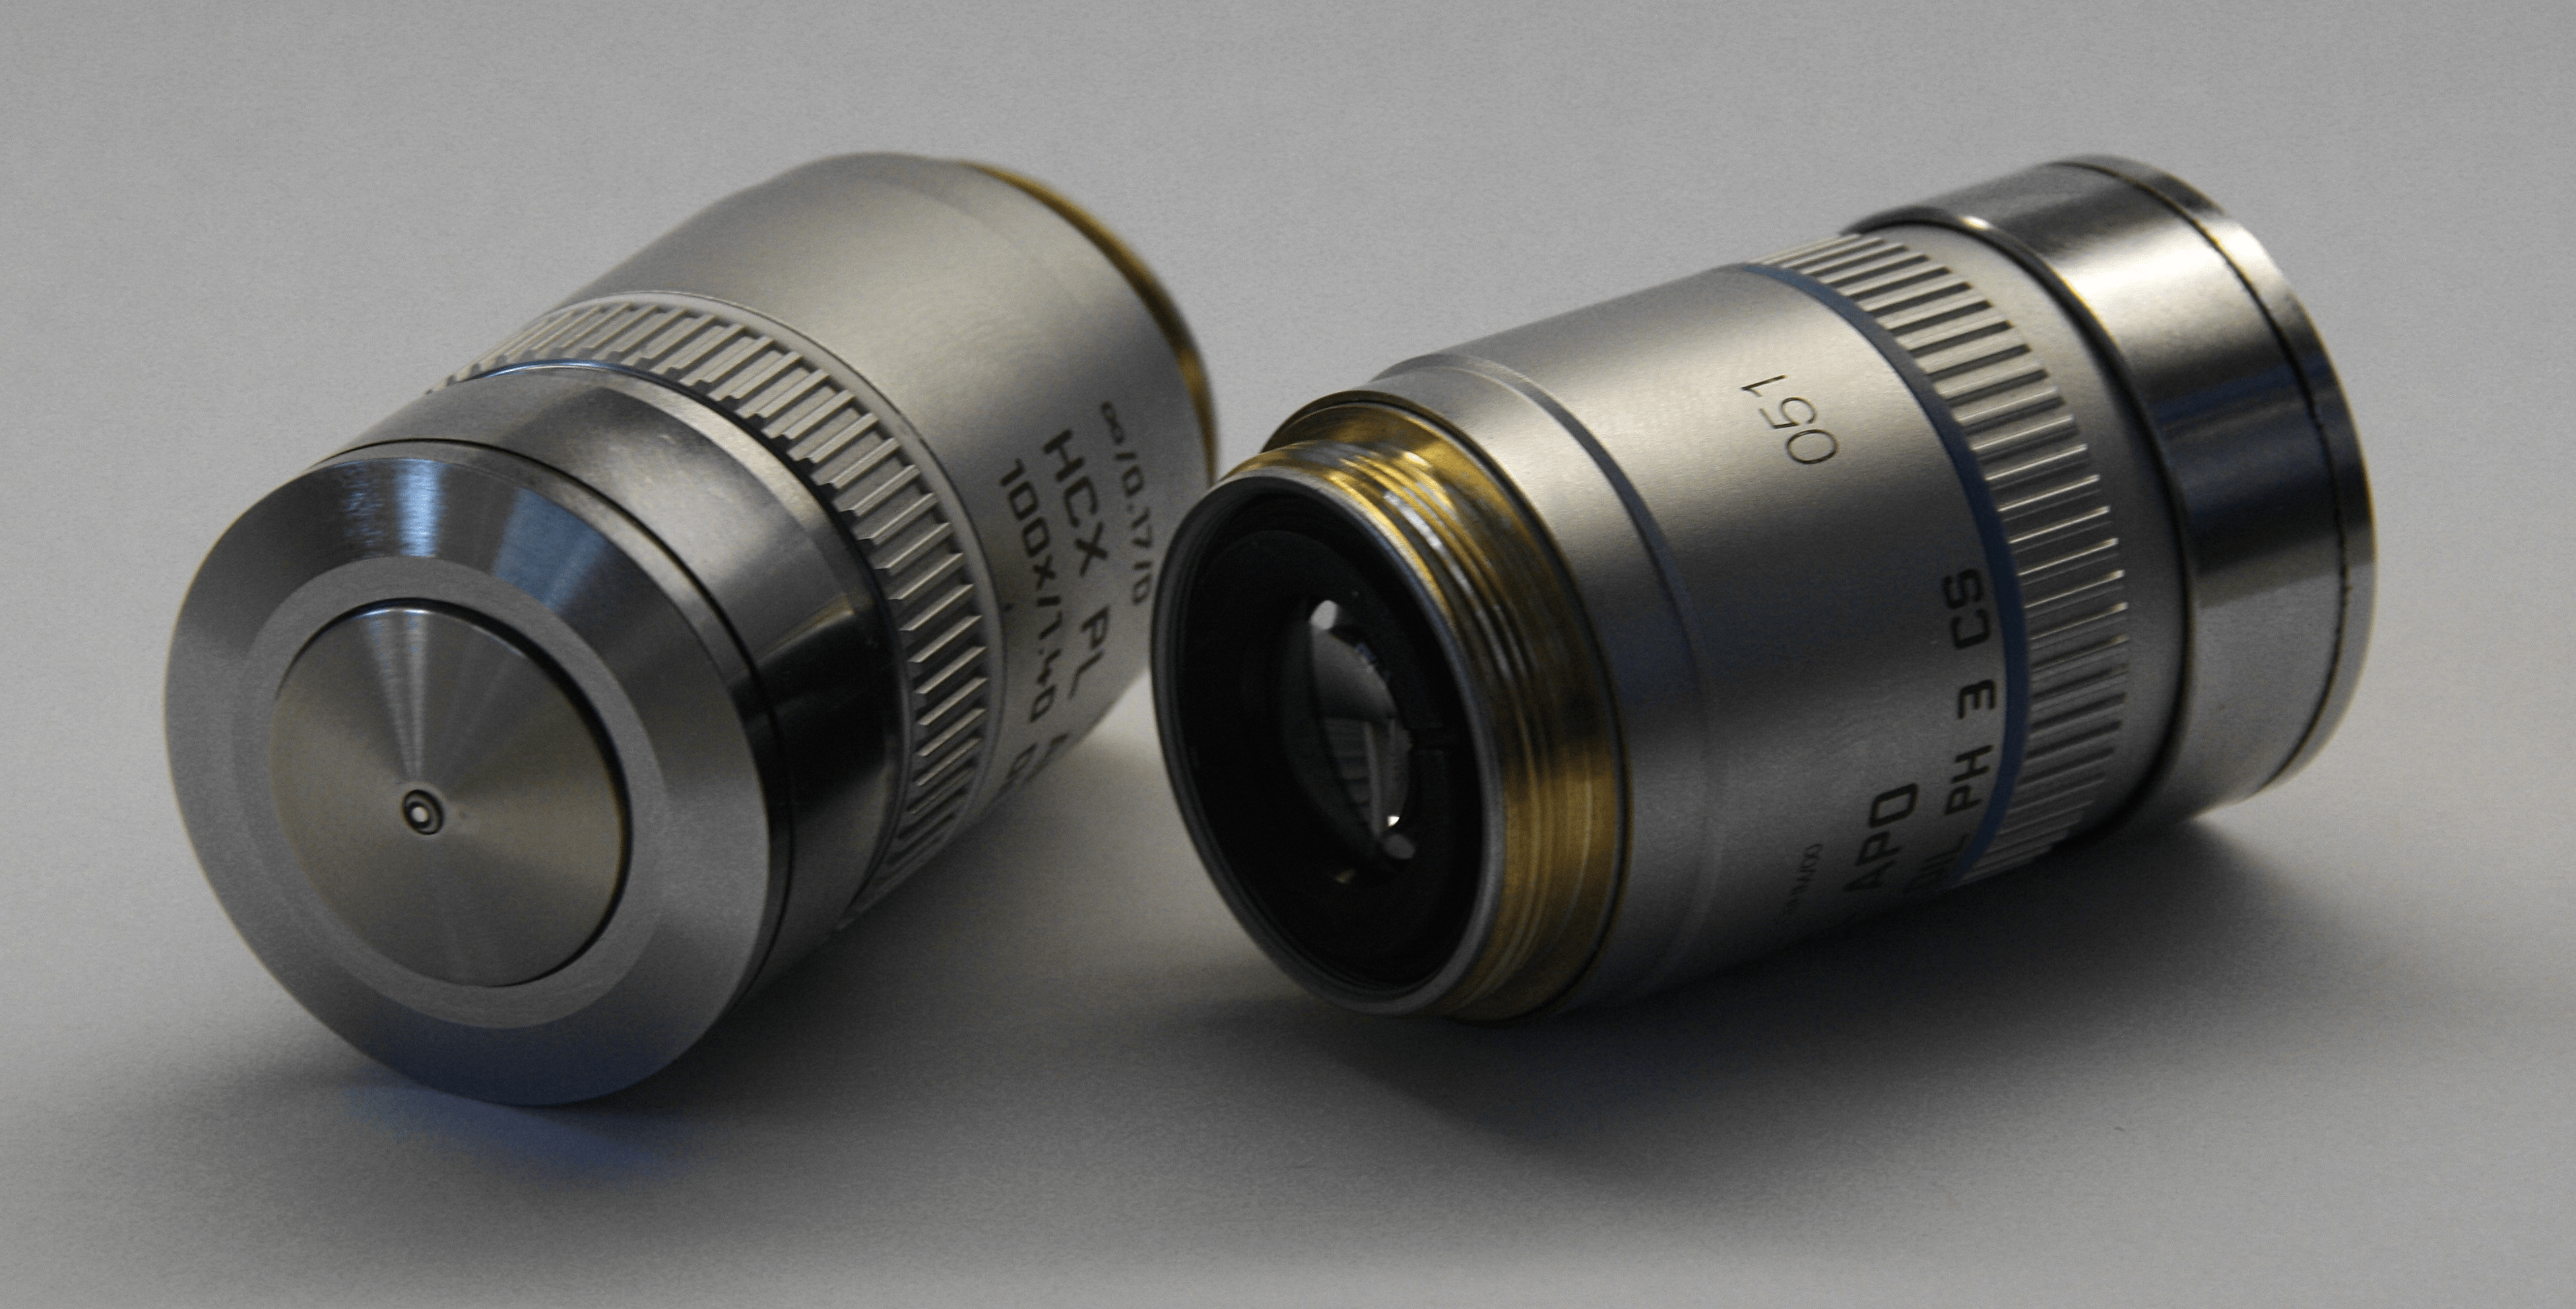 Microscope lenses and objectives